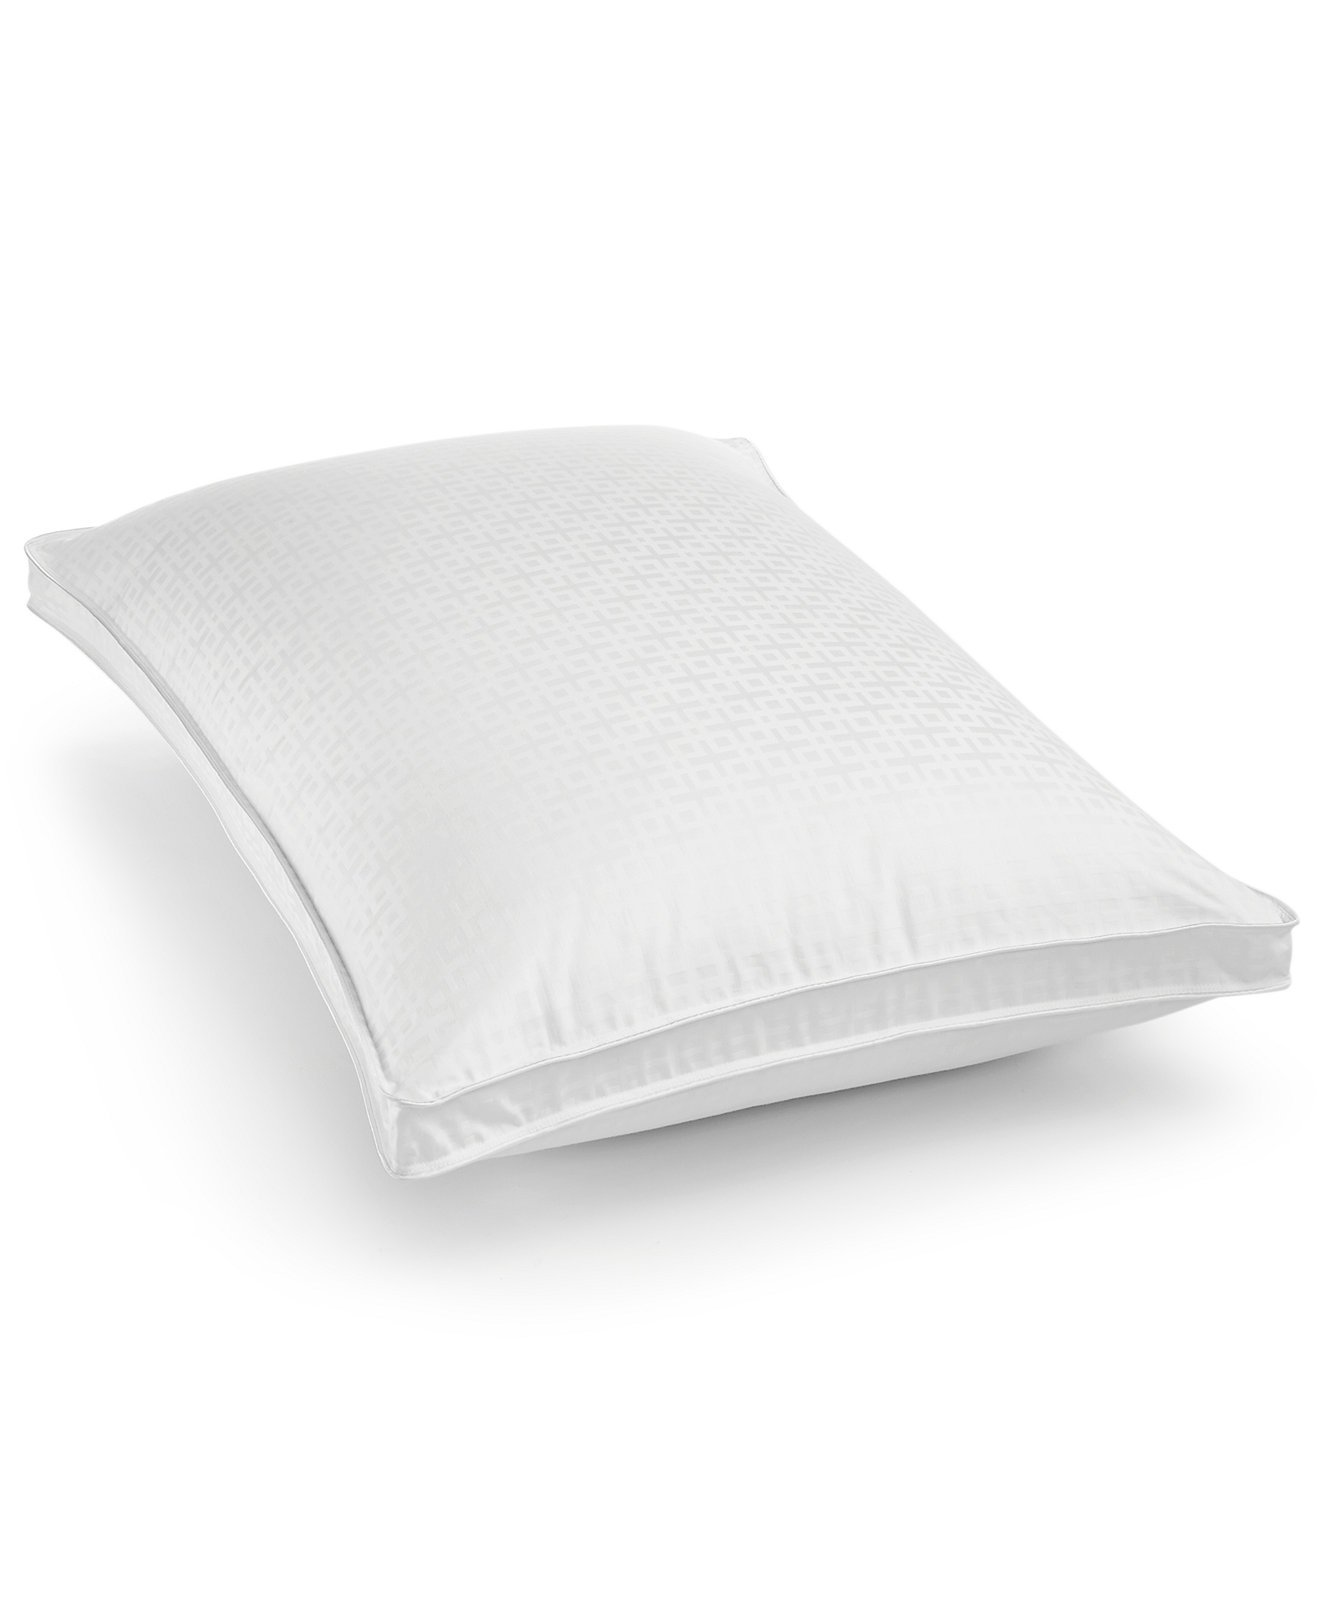 Hotel Collection European White Goose Down Standard / Queen Firm Support Pillow